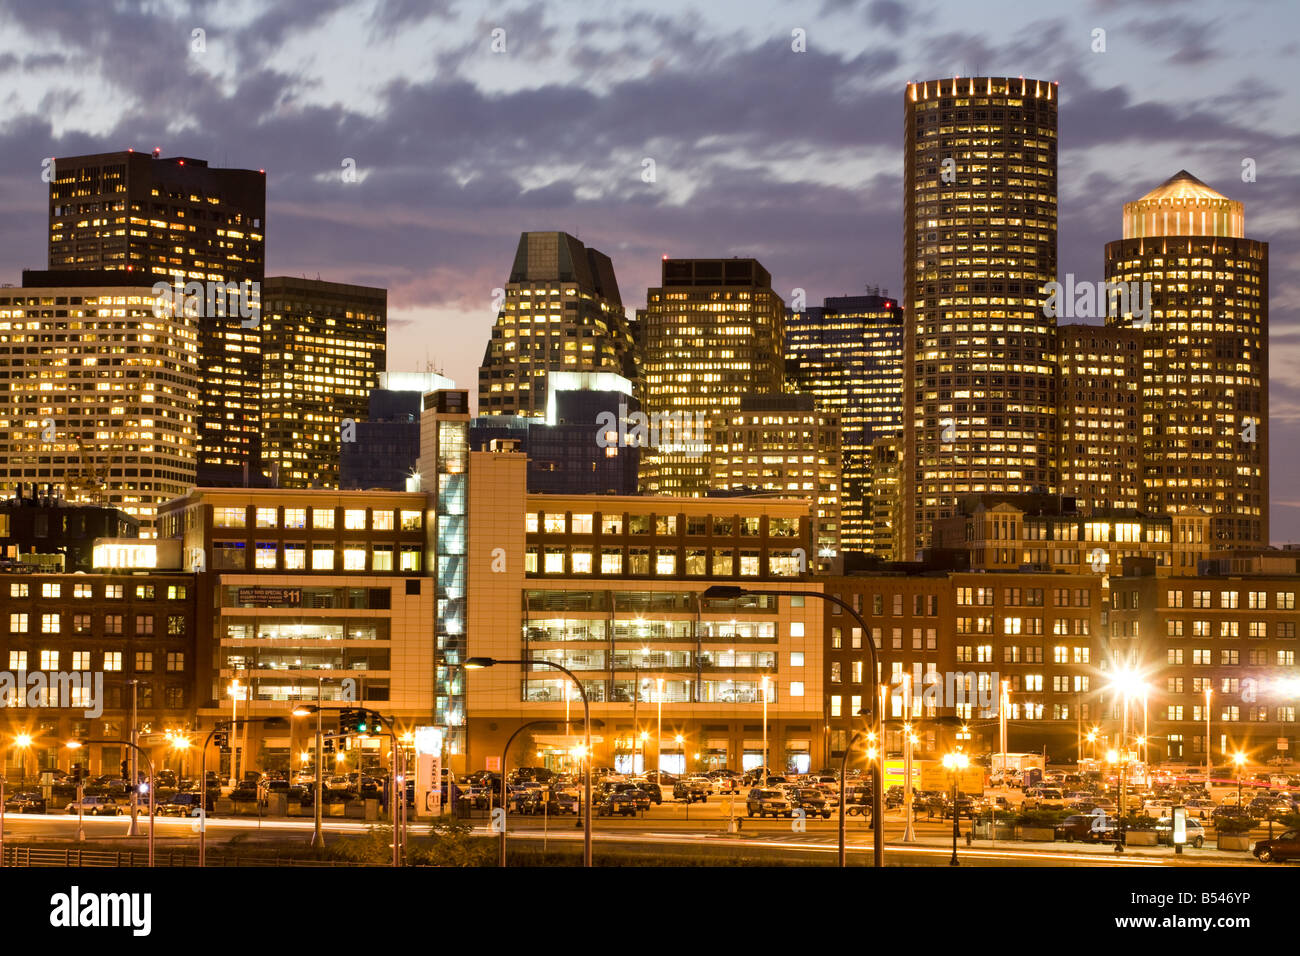 Anochecer skyline del distrito financiero de Boston Massachusetts Imagen De Stock